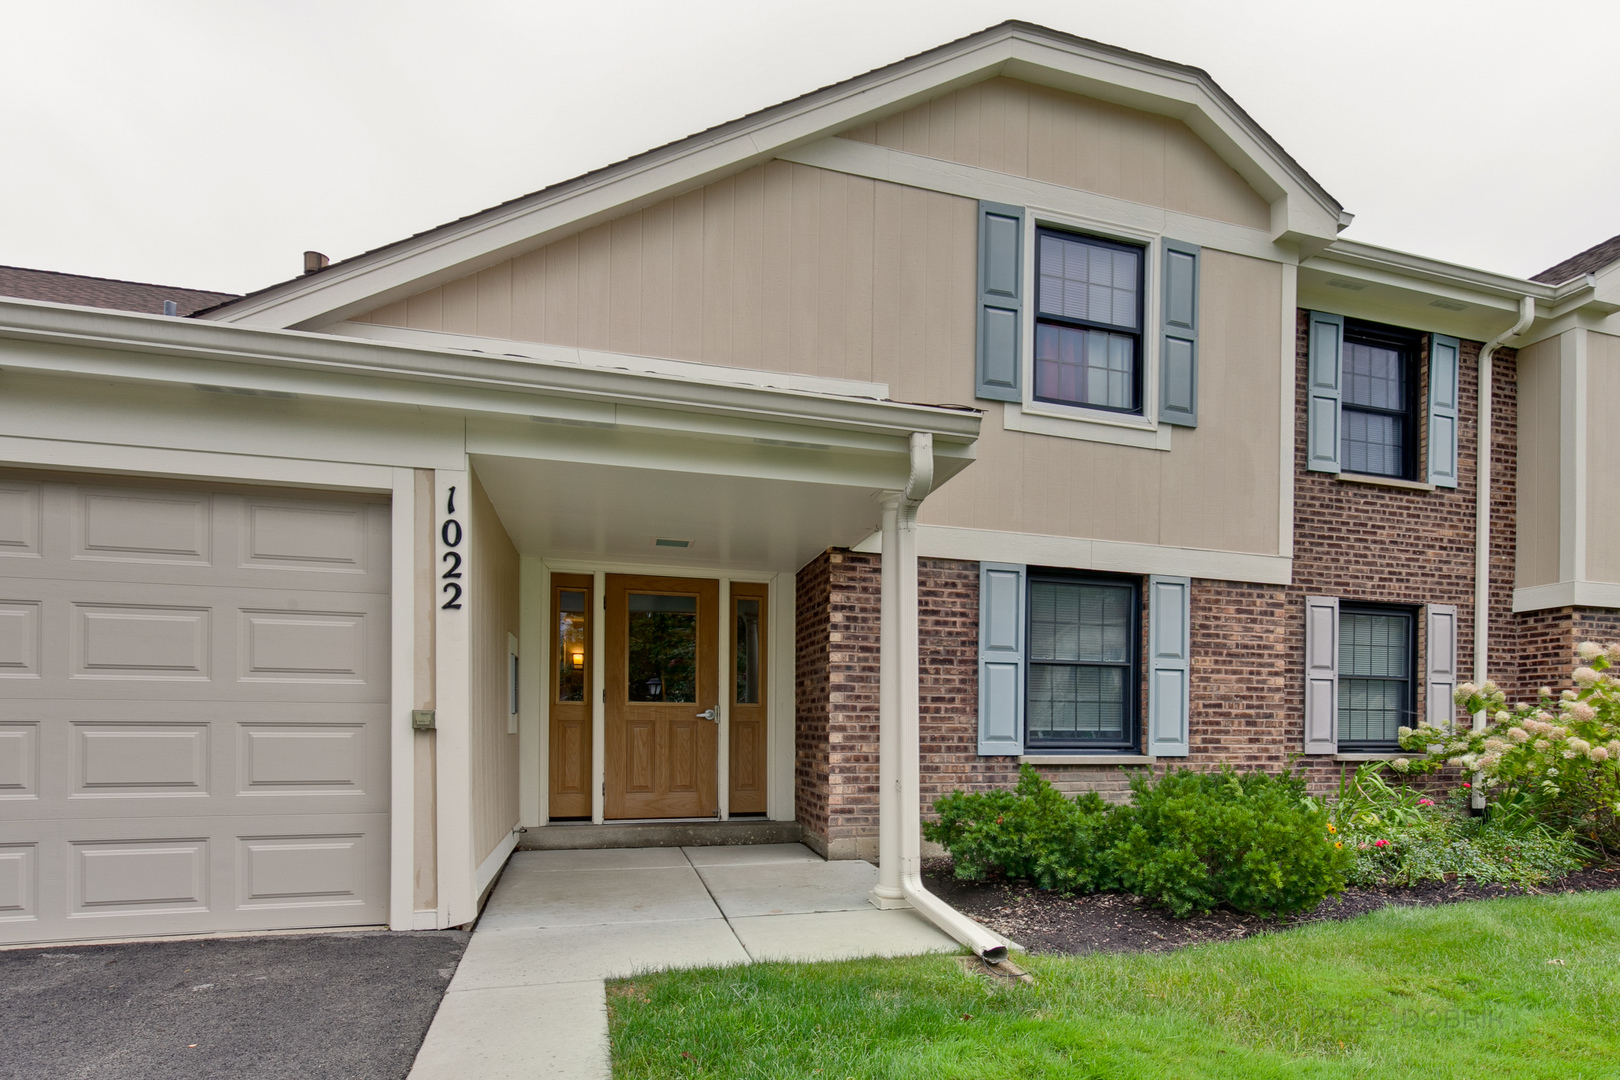 1022 Boxwood Court 60090 - One of Wheeling Homes for Sale